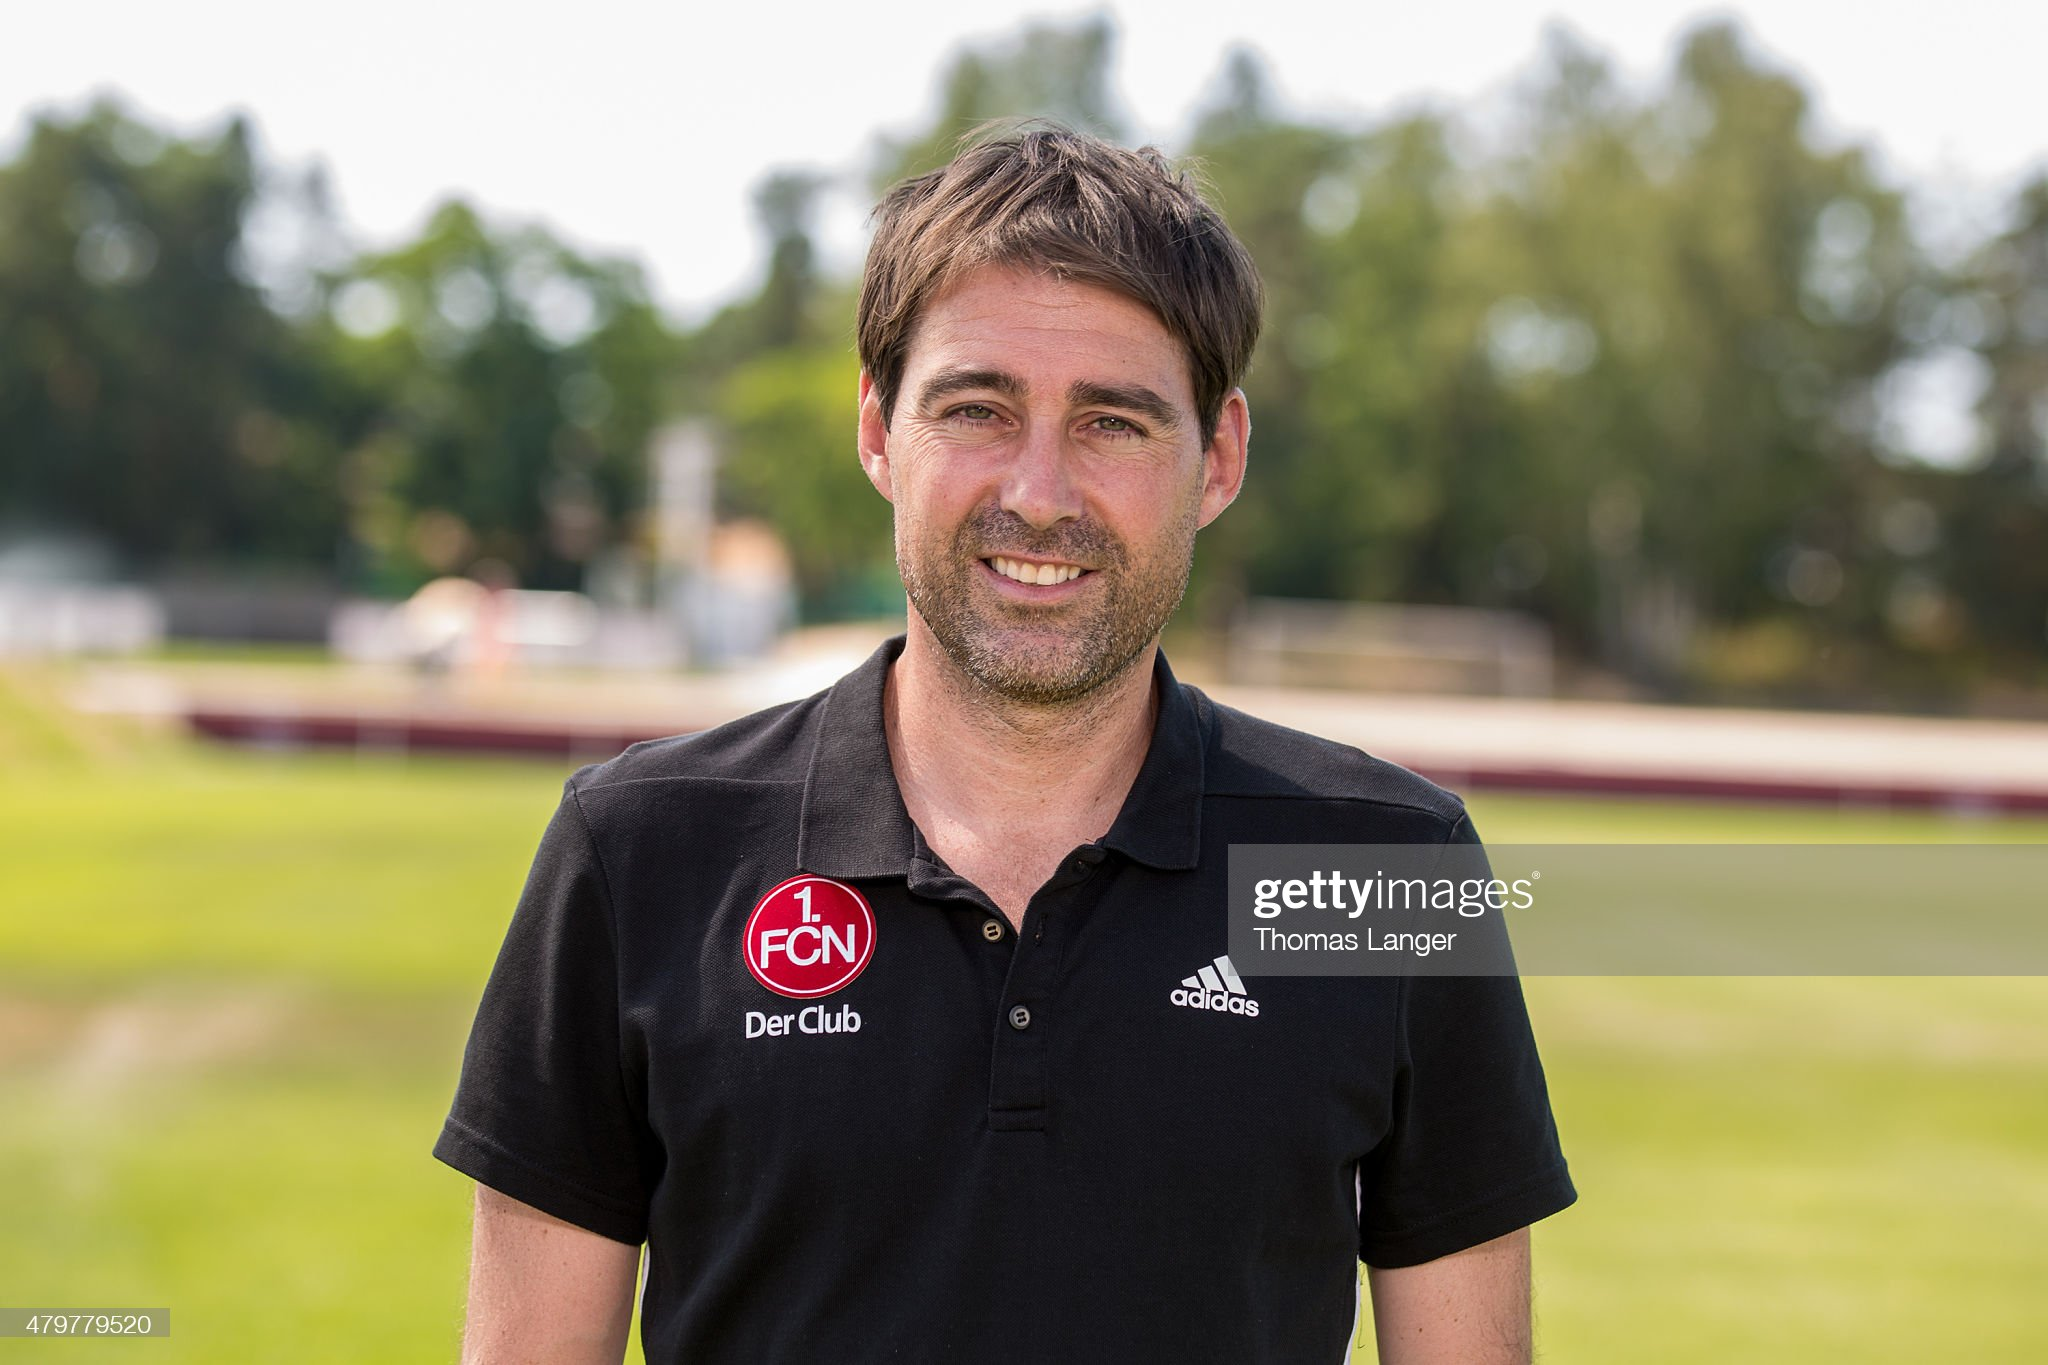 https://media.gettyimages.com/photos/head-coach-rene-weiler-poses-during-the-1-fc-nuernberg-team-at-on-picture-id479779520?s=2048x2048